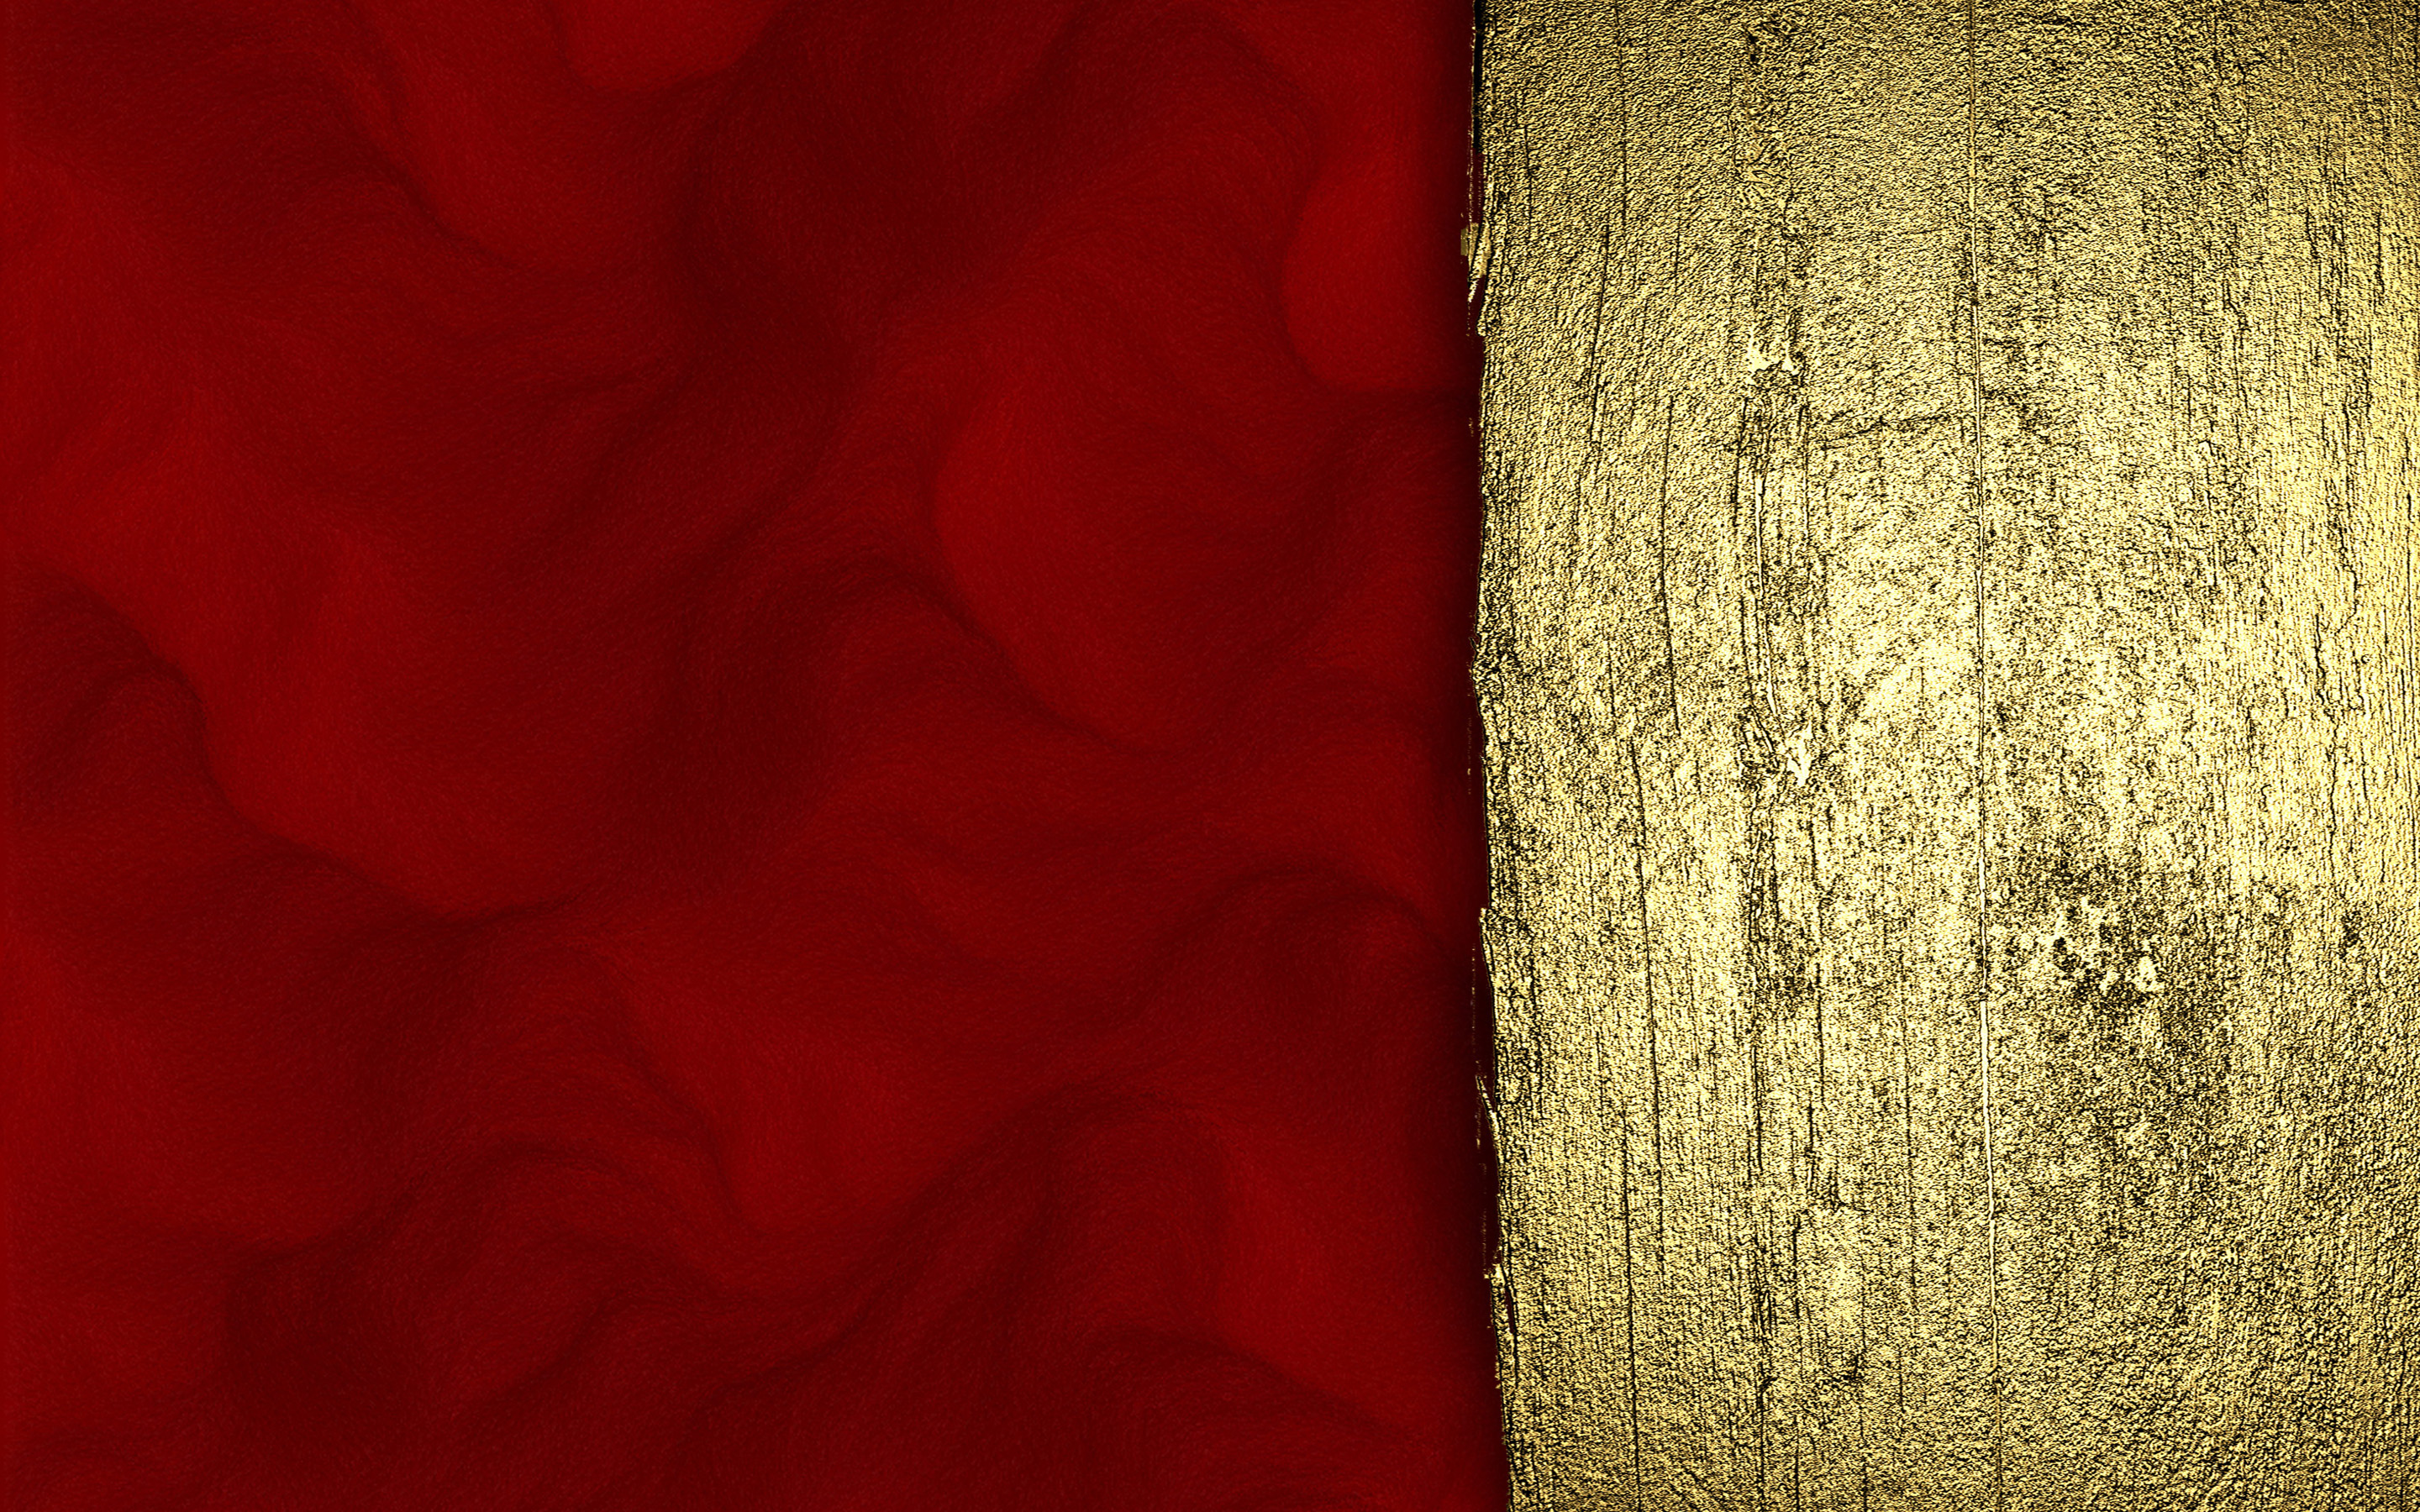 red golden background - photo #11